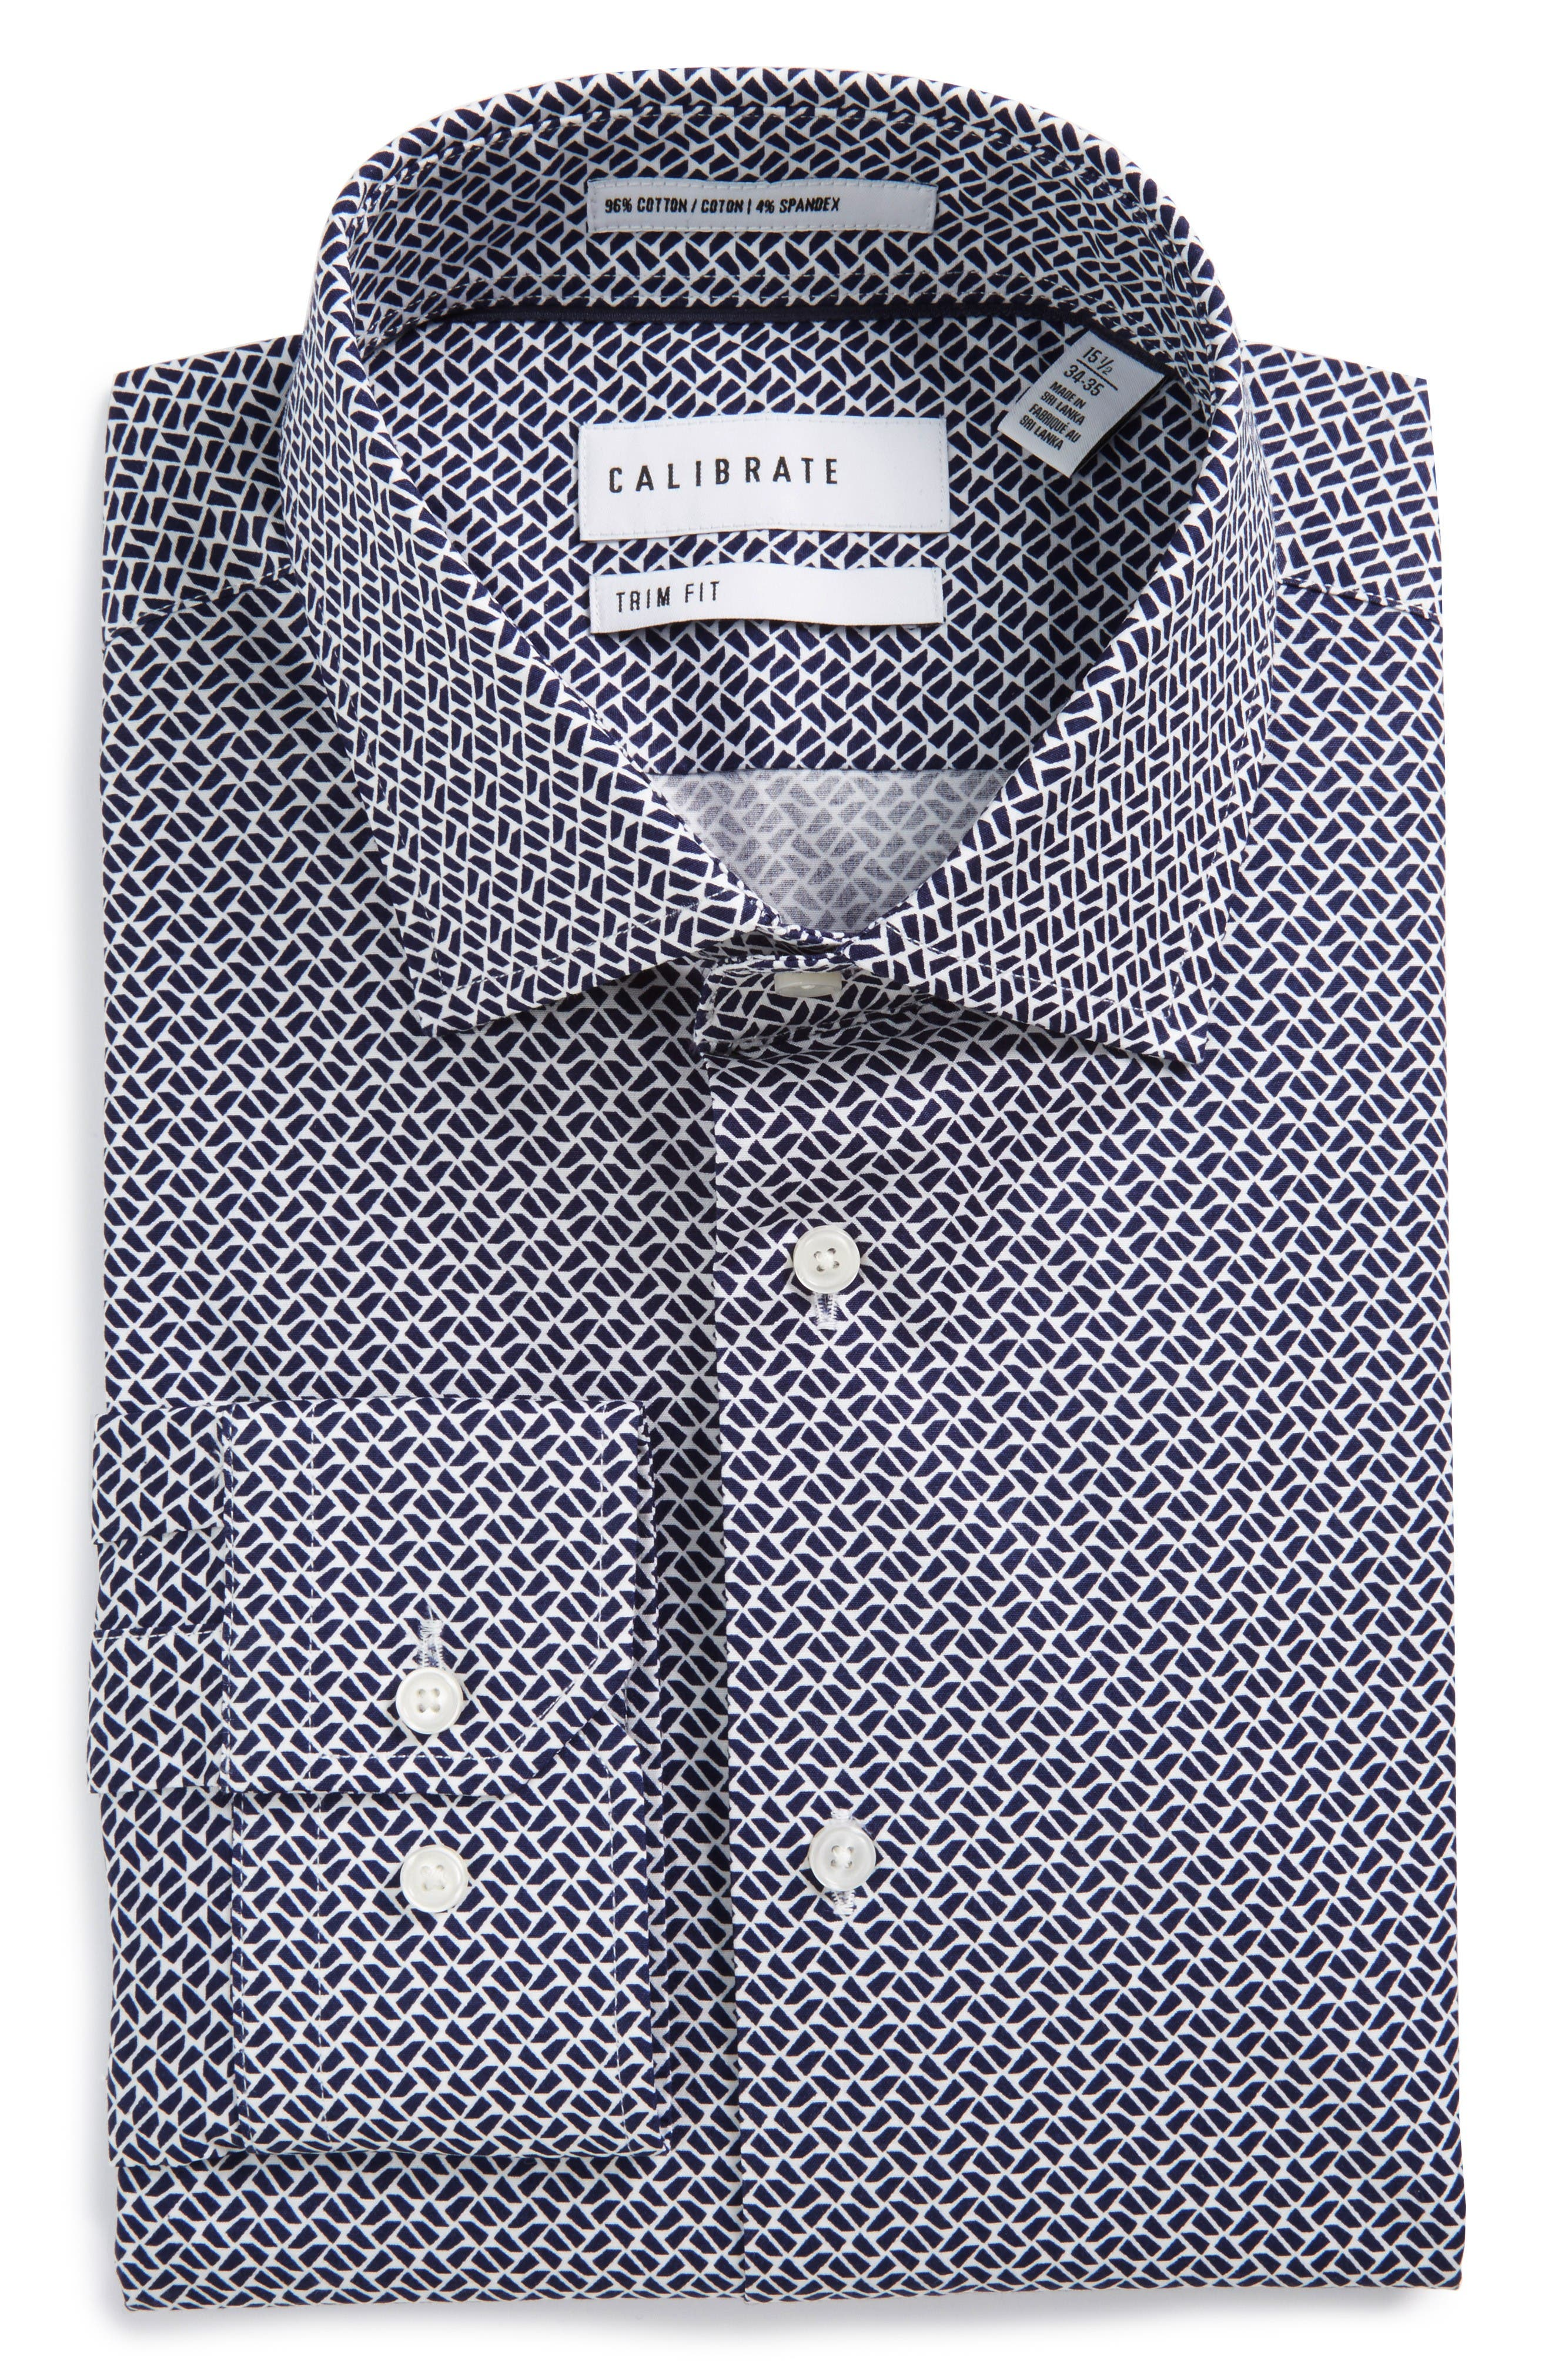 CALIBRATE Trim Fit Geometric Stretch Dress Shirt